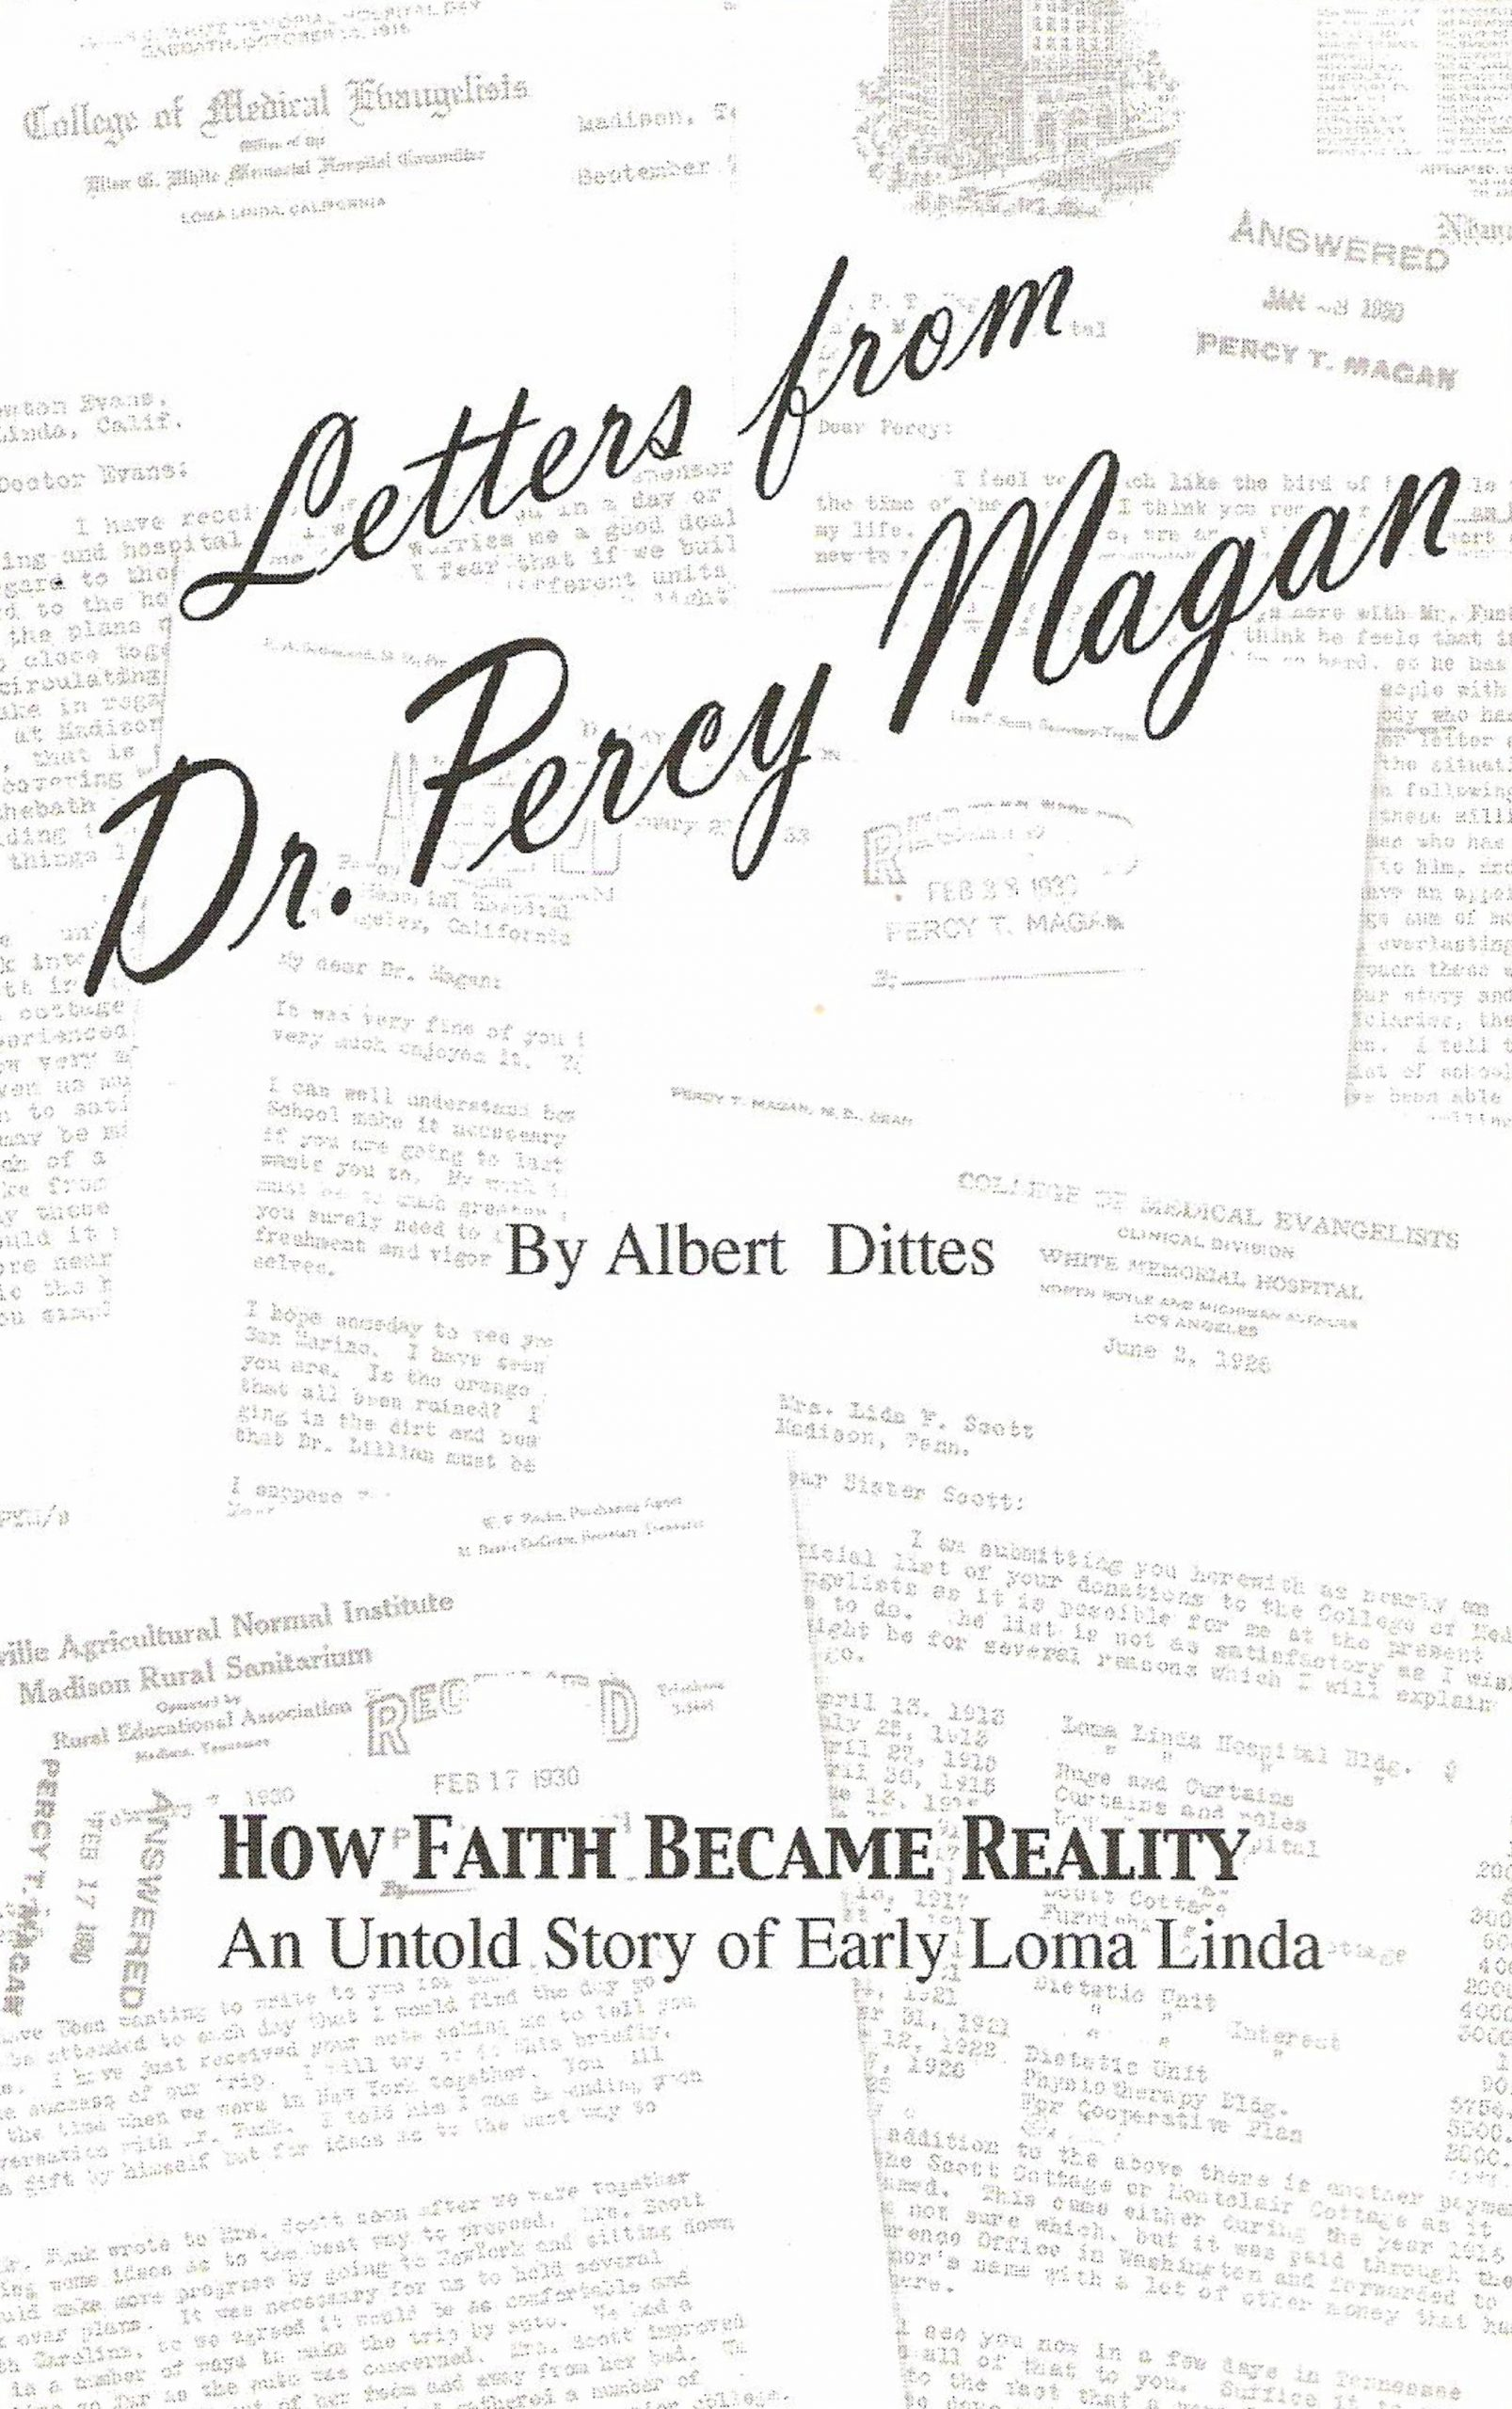 Letters from Dr. Percy Magan